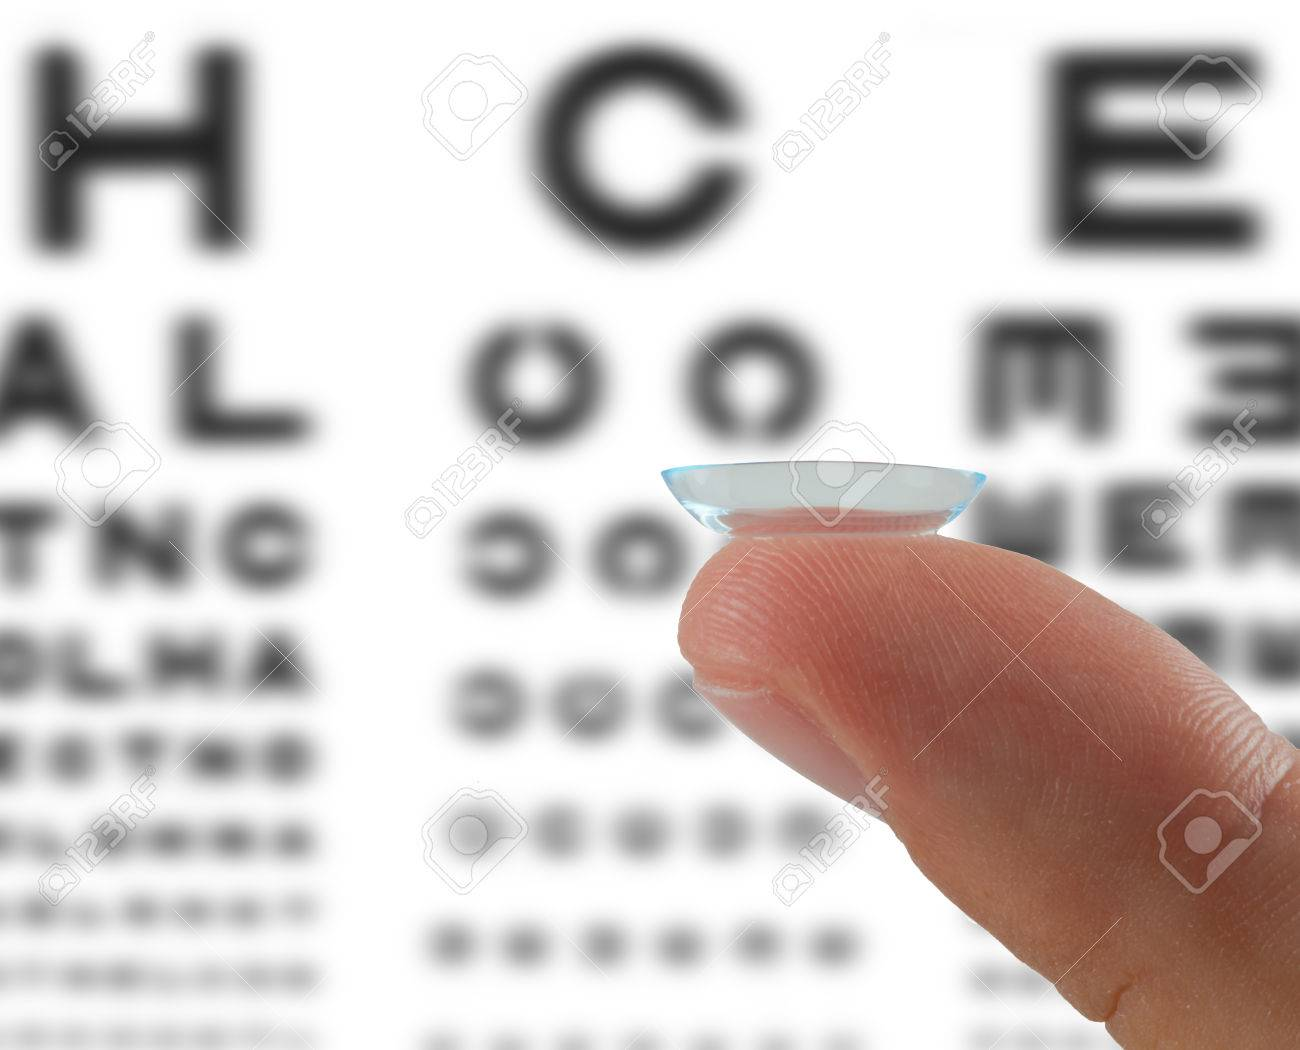 Contact lens on finger on the table for the checking eyesight Stock Photo - 27247447